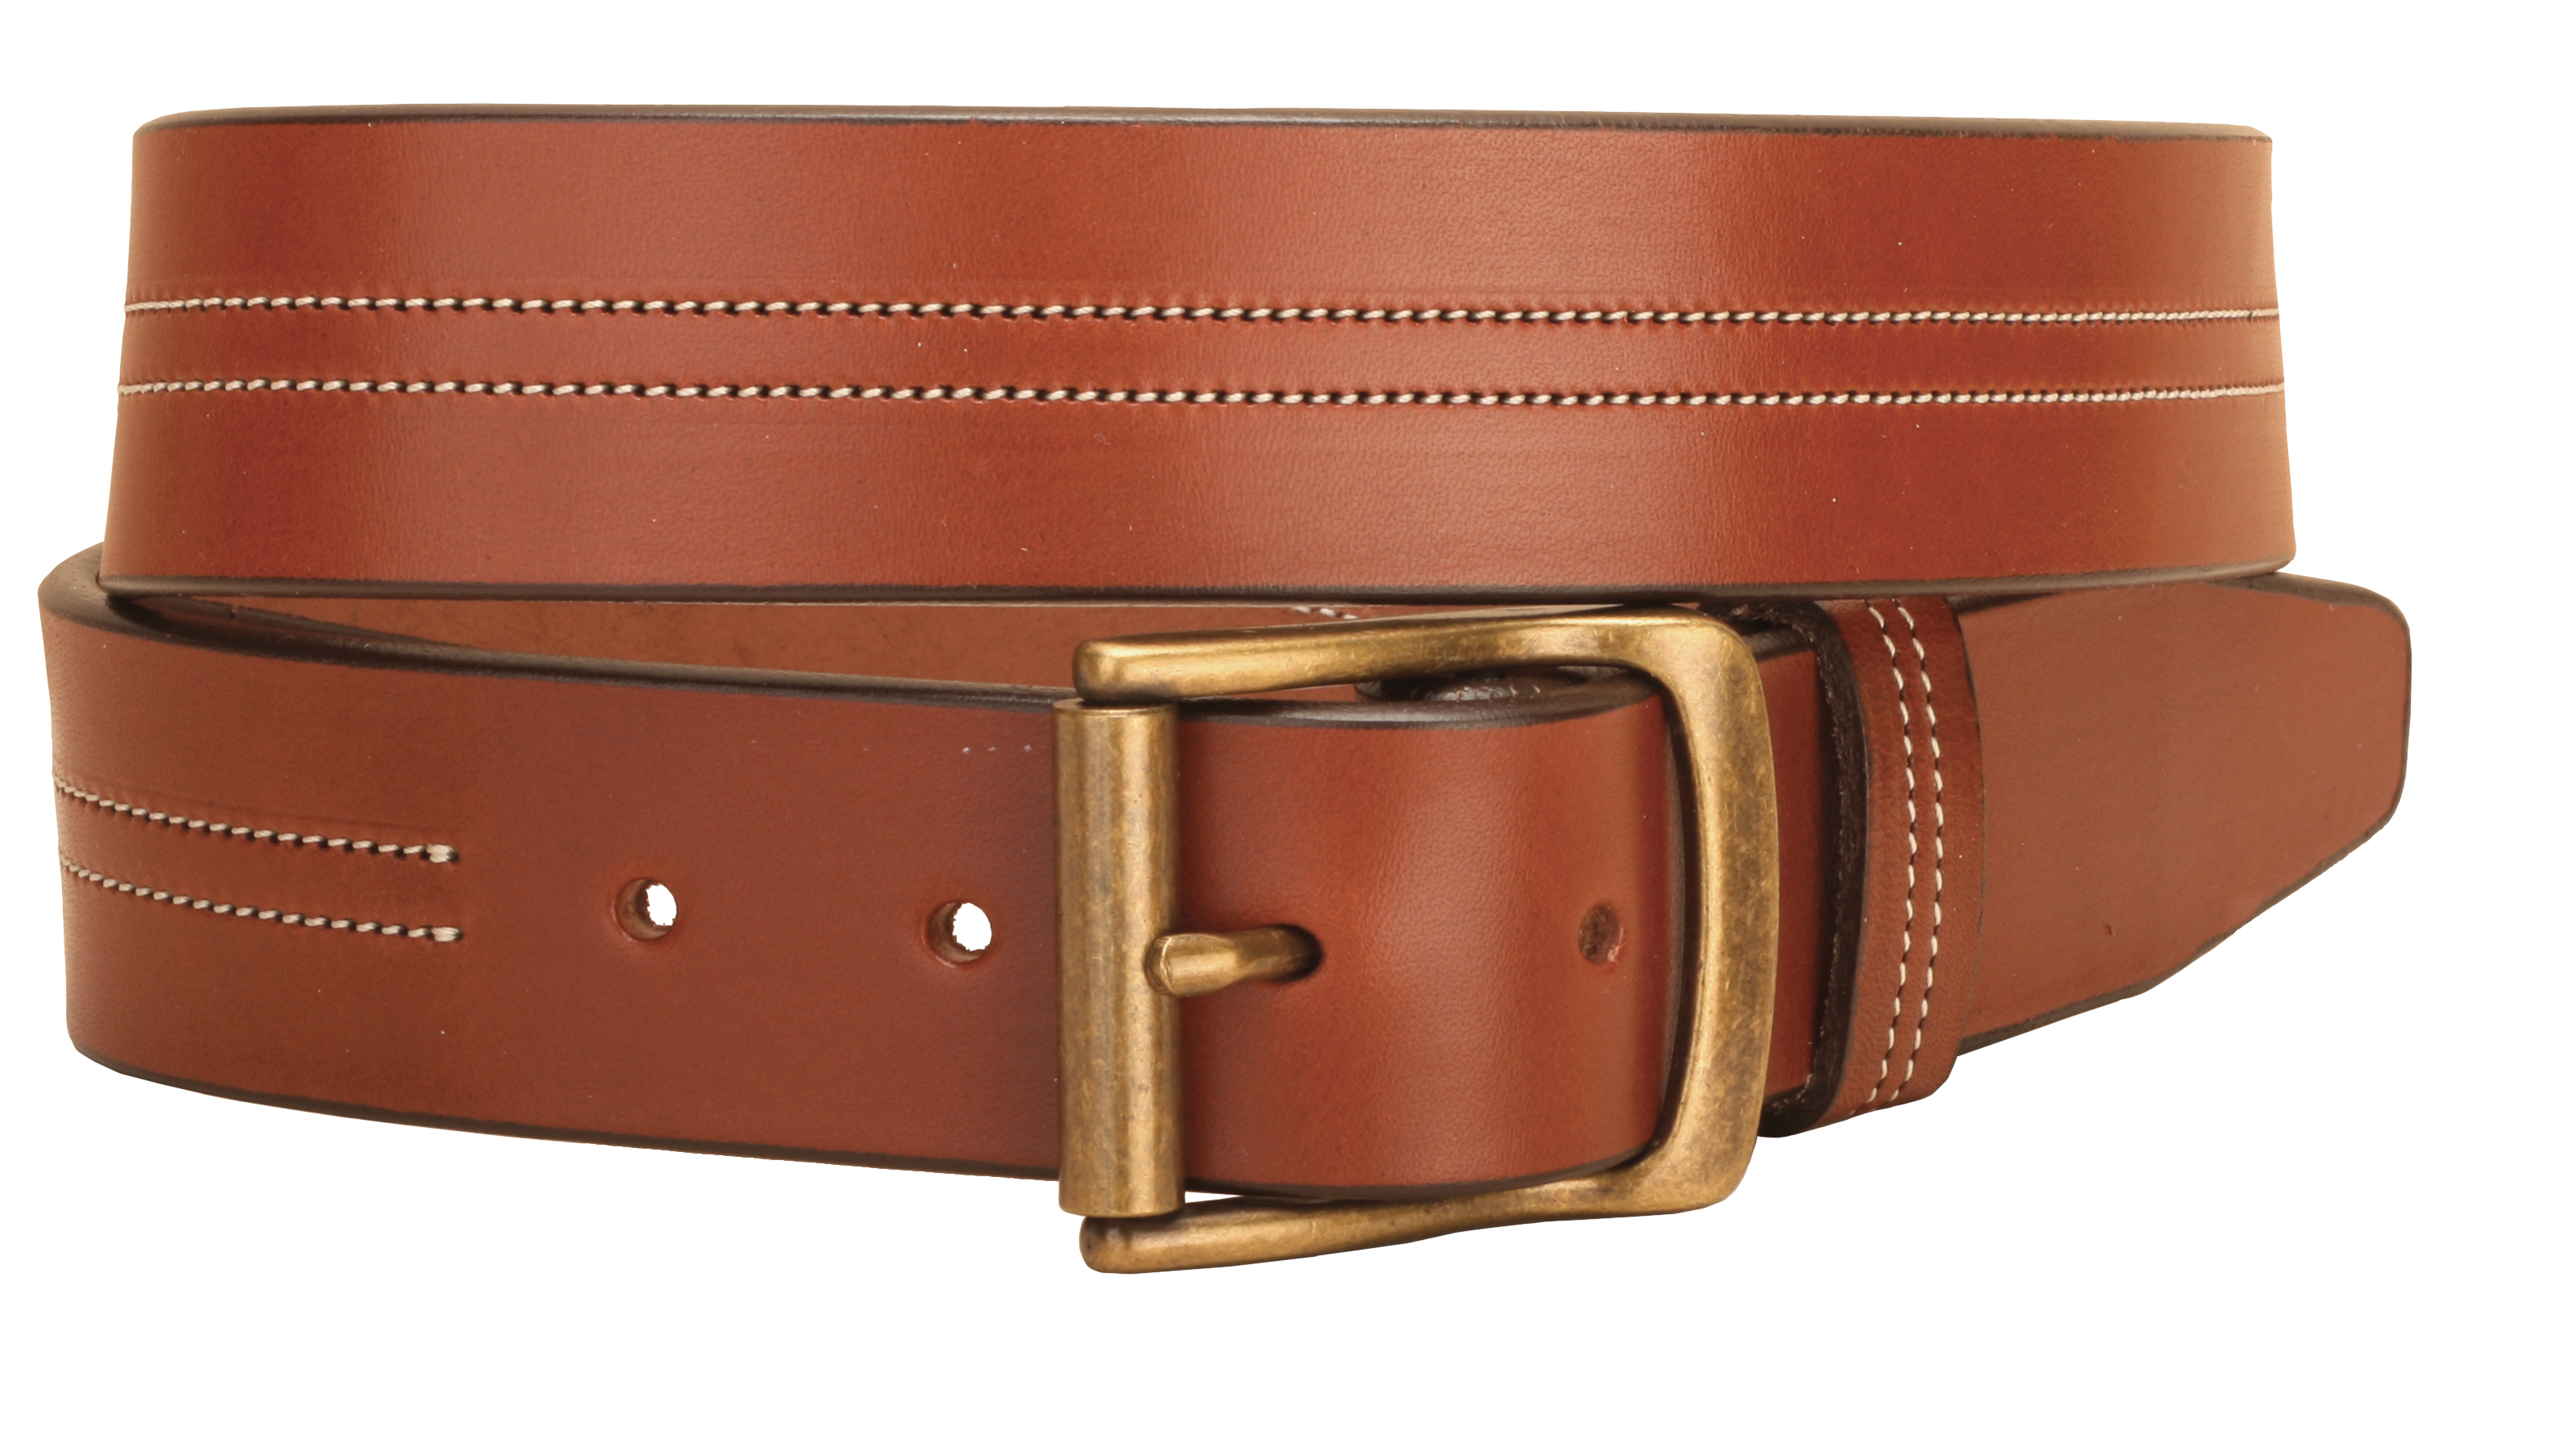 Tory Leather Center Stitched Double Row Leather Belt